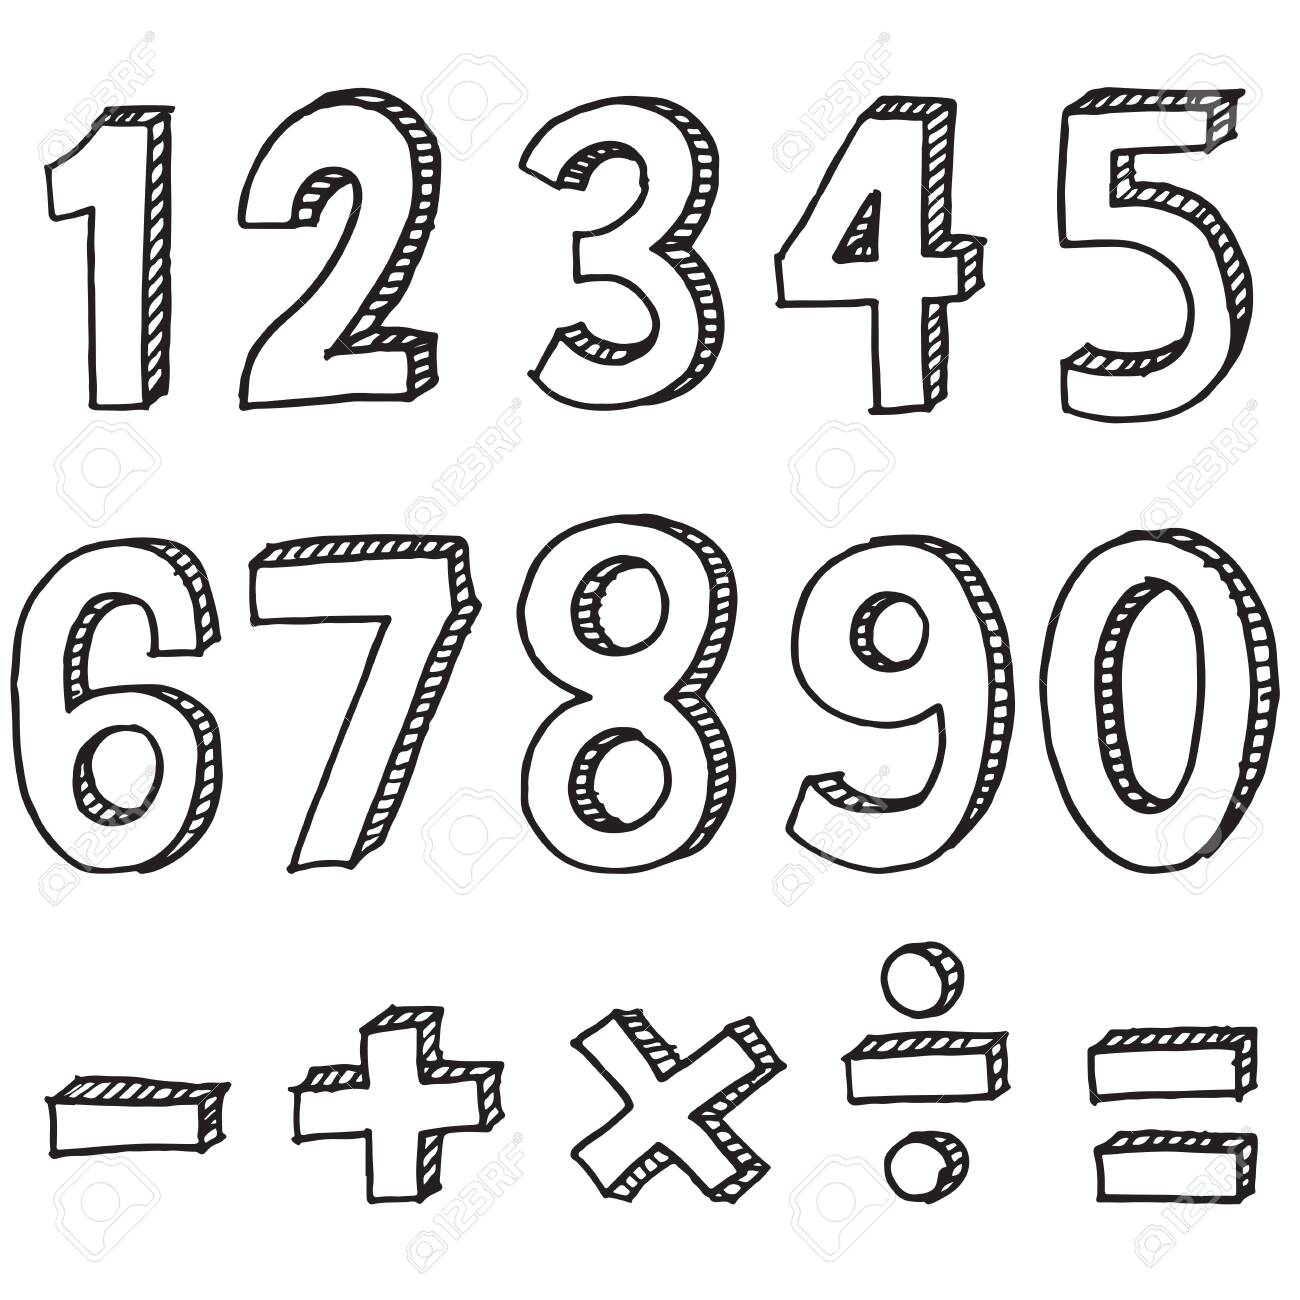 Hand drawn colorful numbers. doodle numbers for children's themes isolated on white background. - 151632974